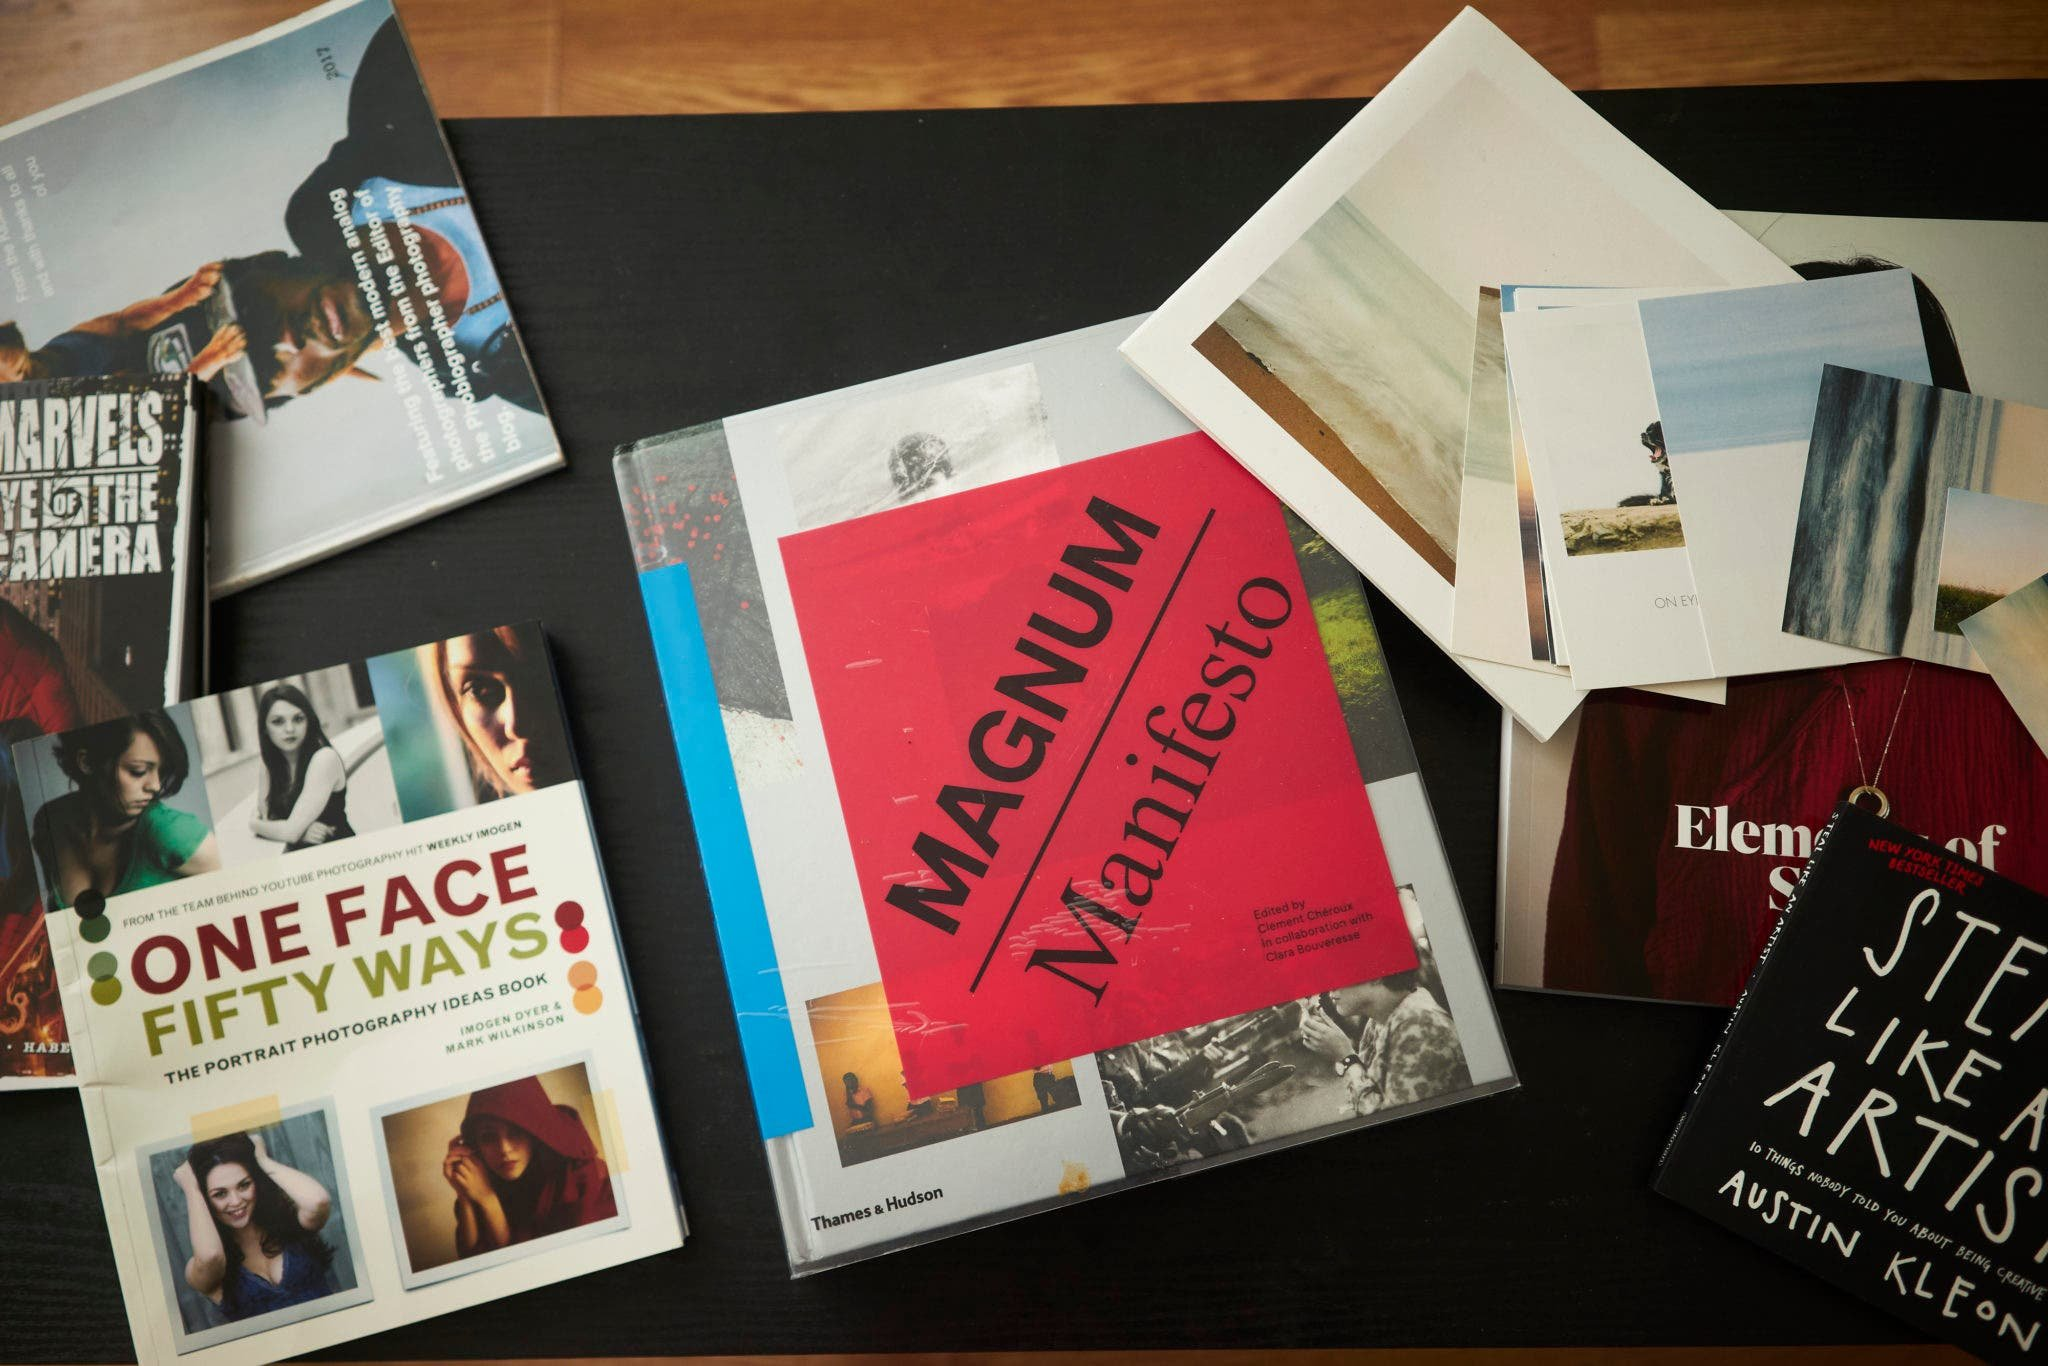 Every Photographic Artist Should Take a Look at These Books